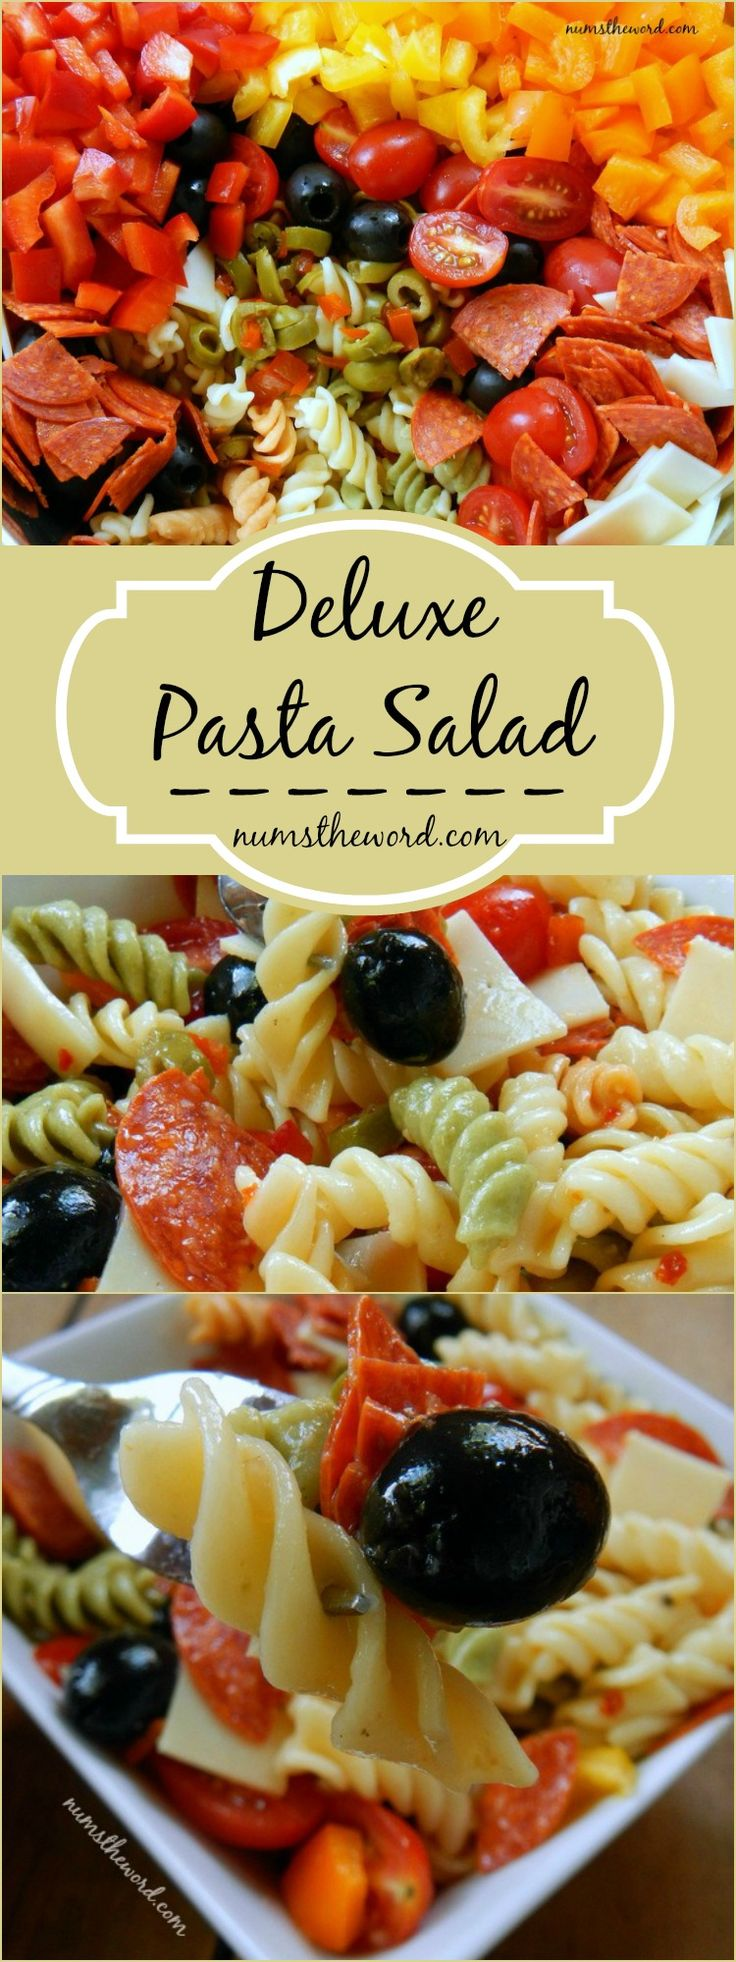 If you love pasta salad, then try this deluxe version. Hearty, tasty and oh so yummy! Great for any potluck, picnic or lunch and makes great leftovers too!